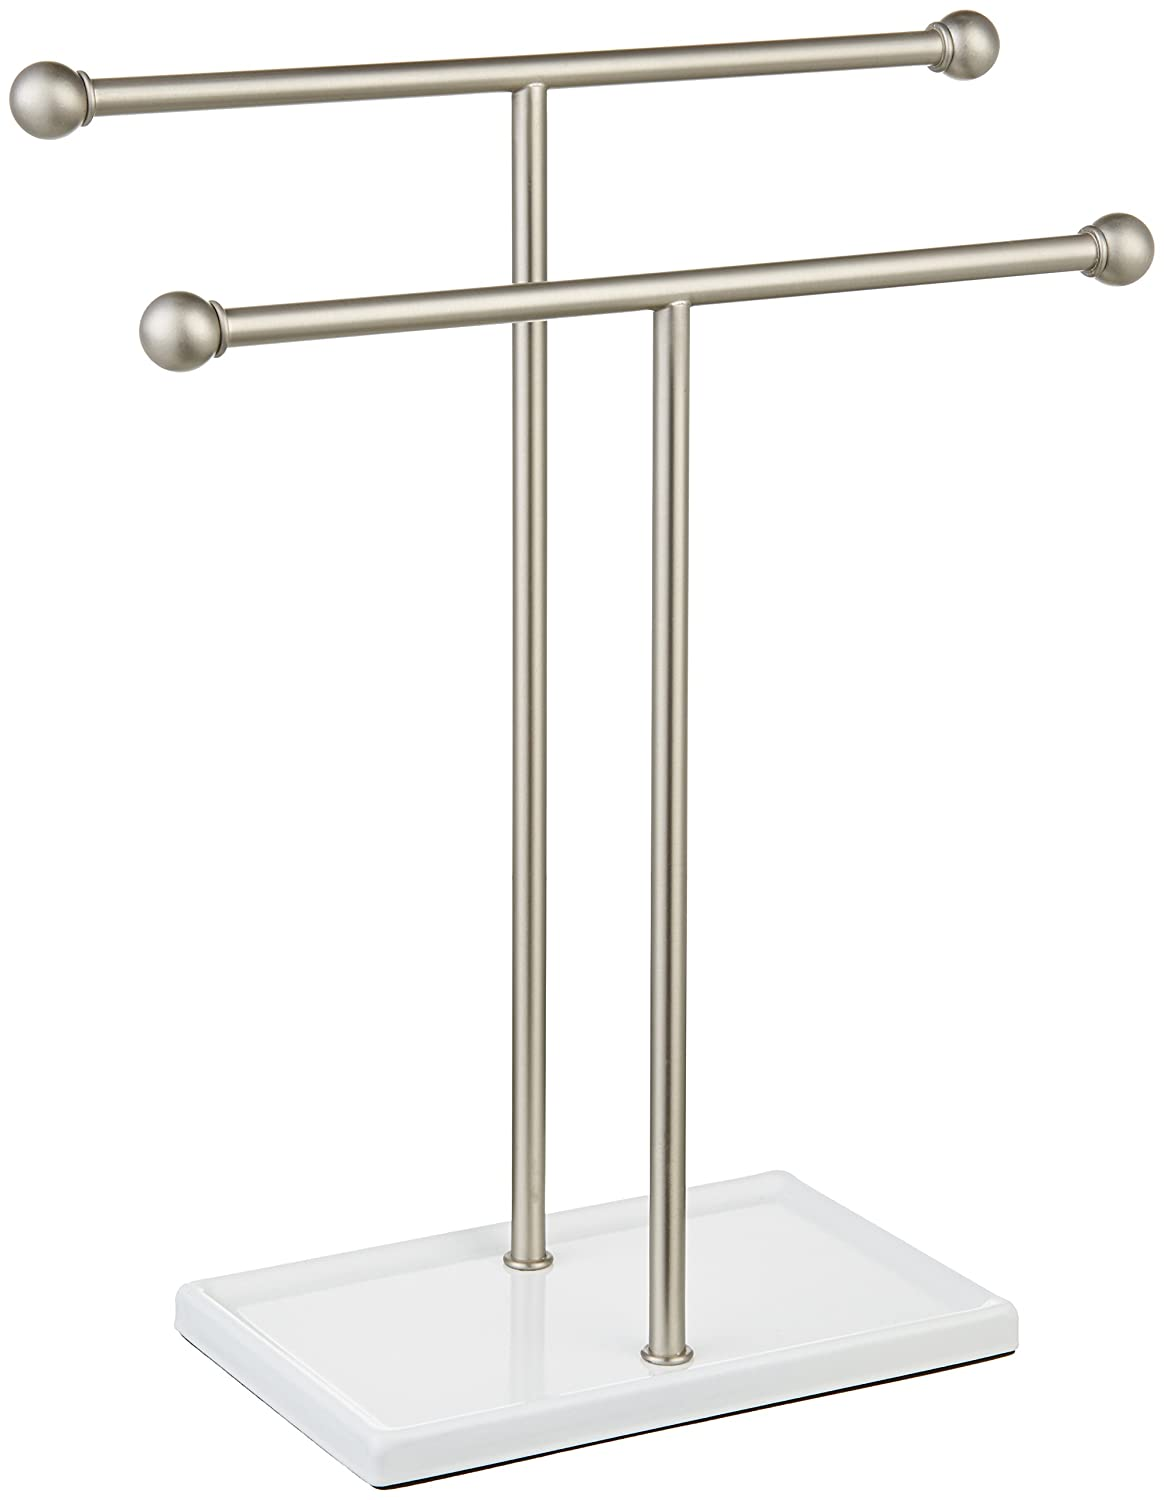 AmazonBasics Double-T Hand Towel Holder and Accessories Jewelry Stand, Nickel/White - 1005573-670-A60